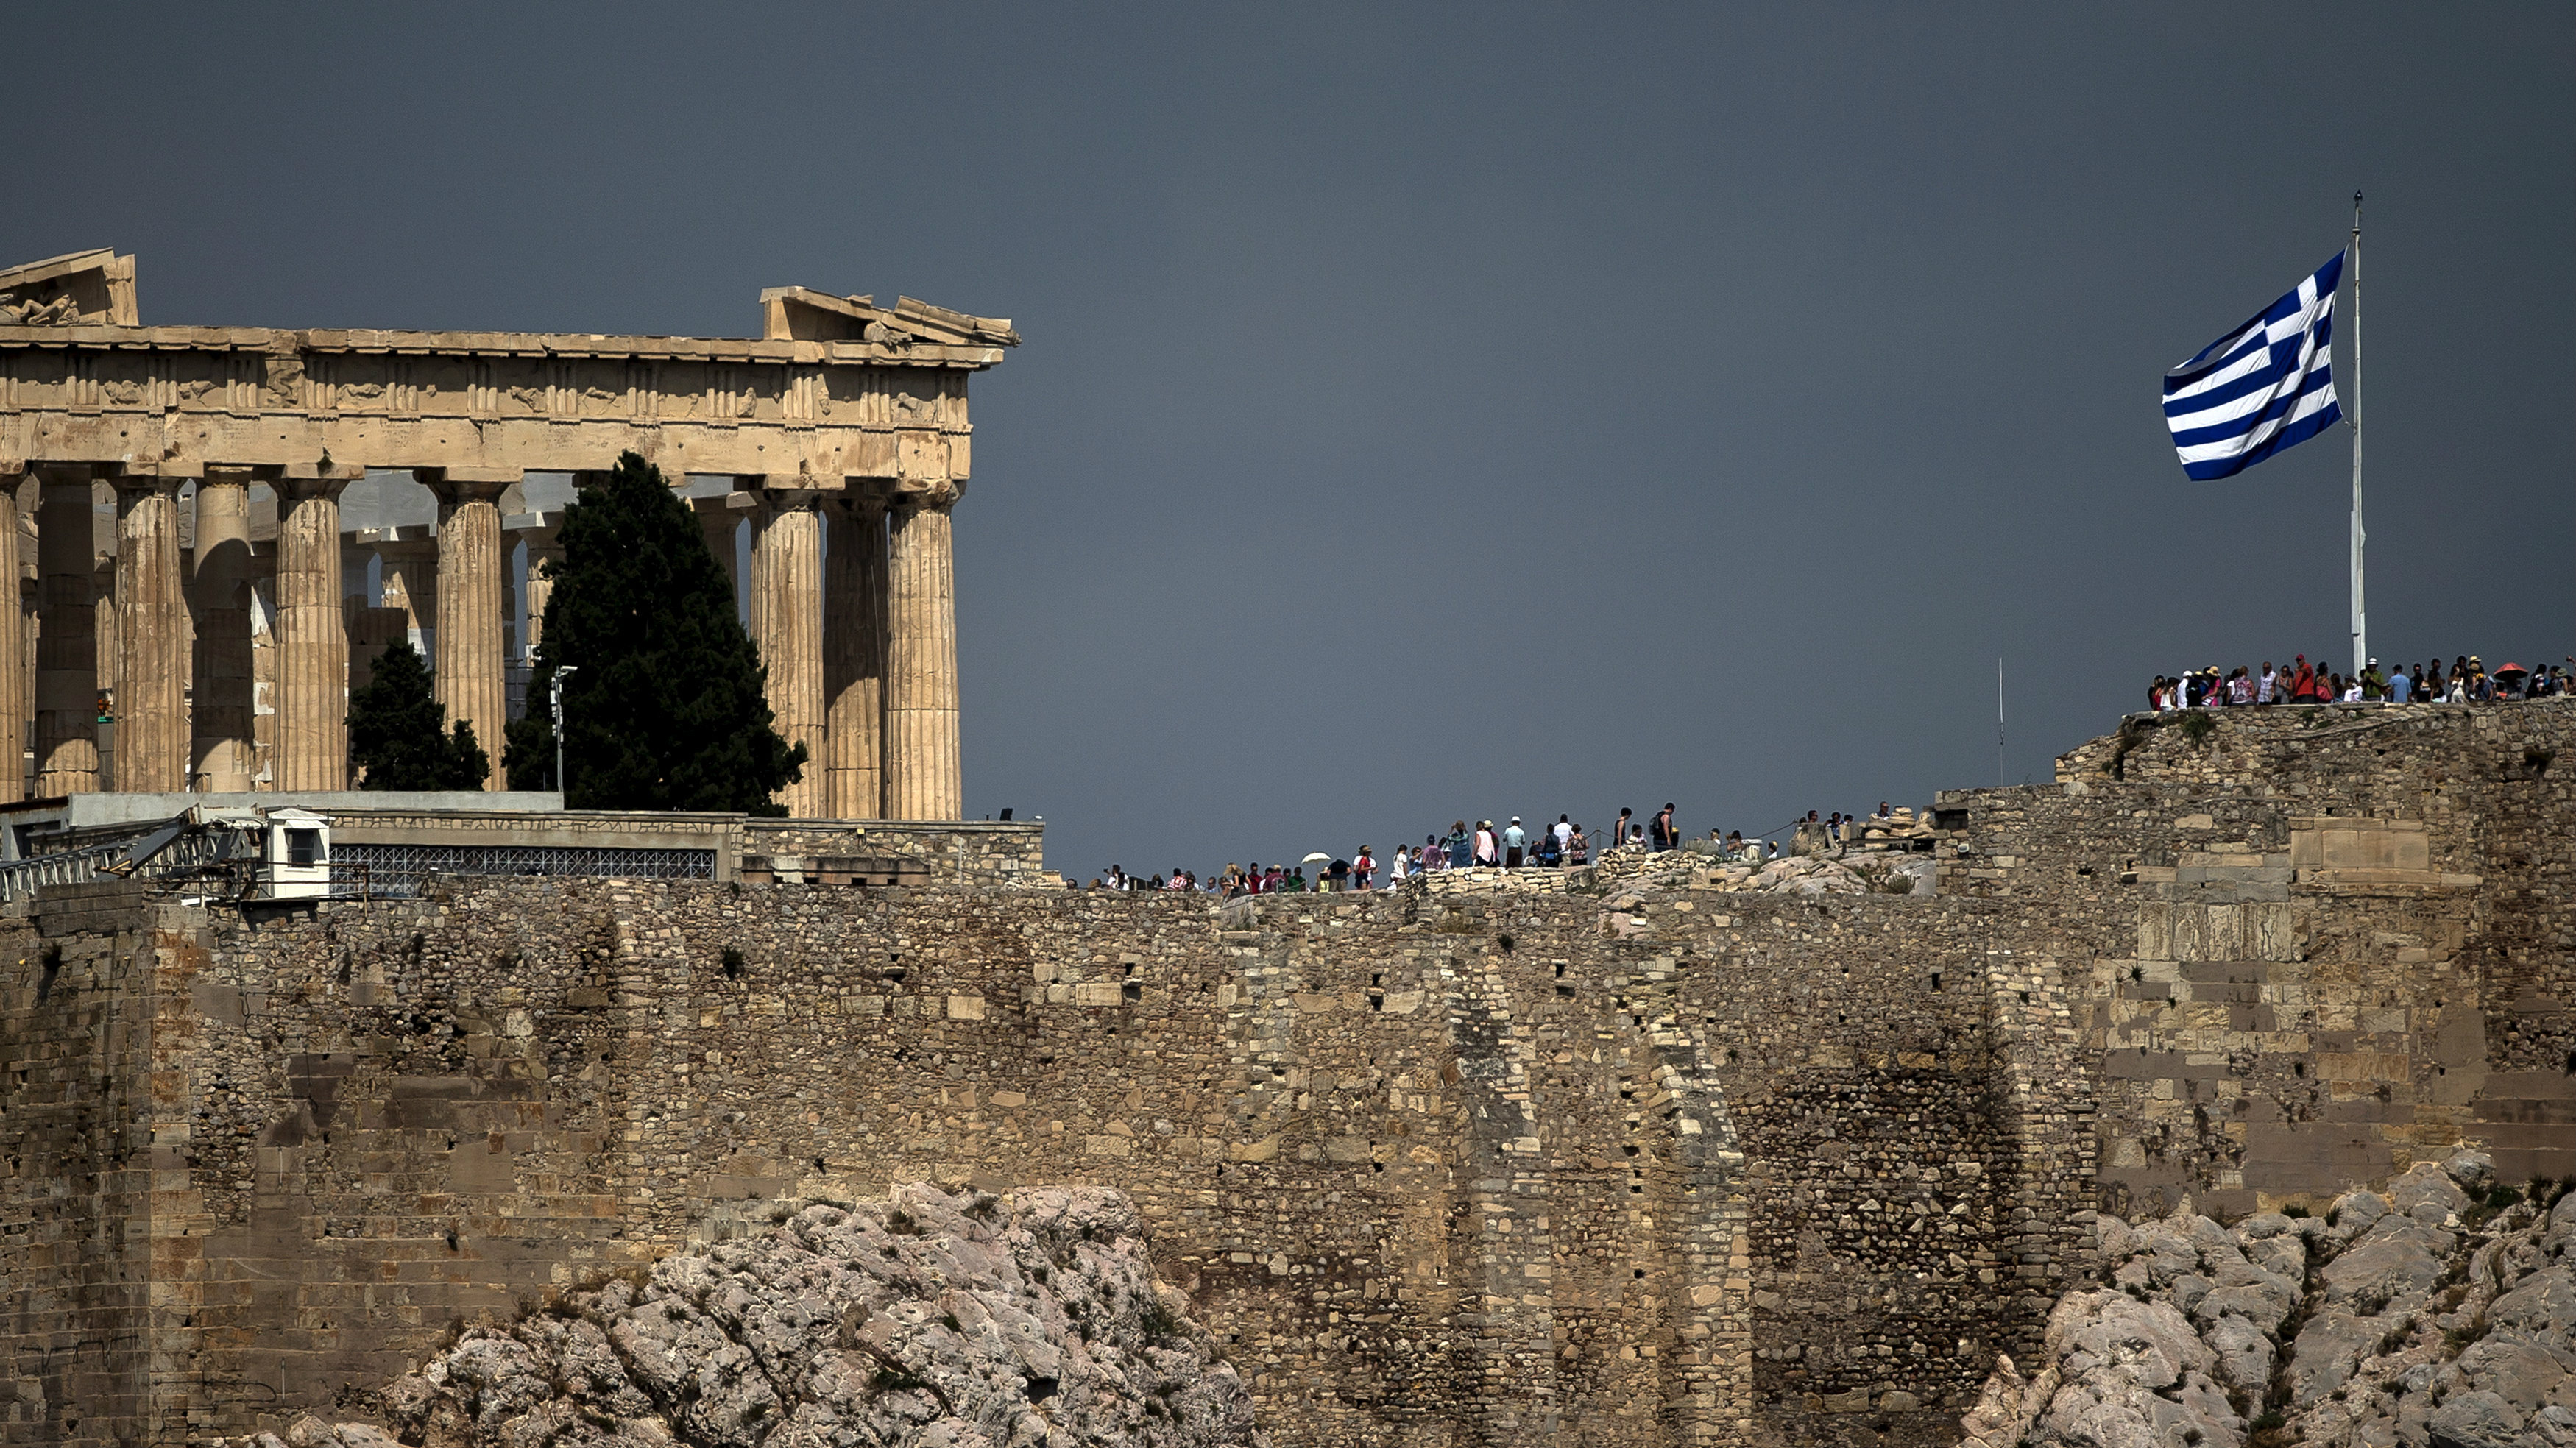 Greek Parthenon with flag in the distance